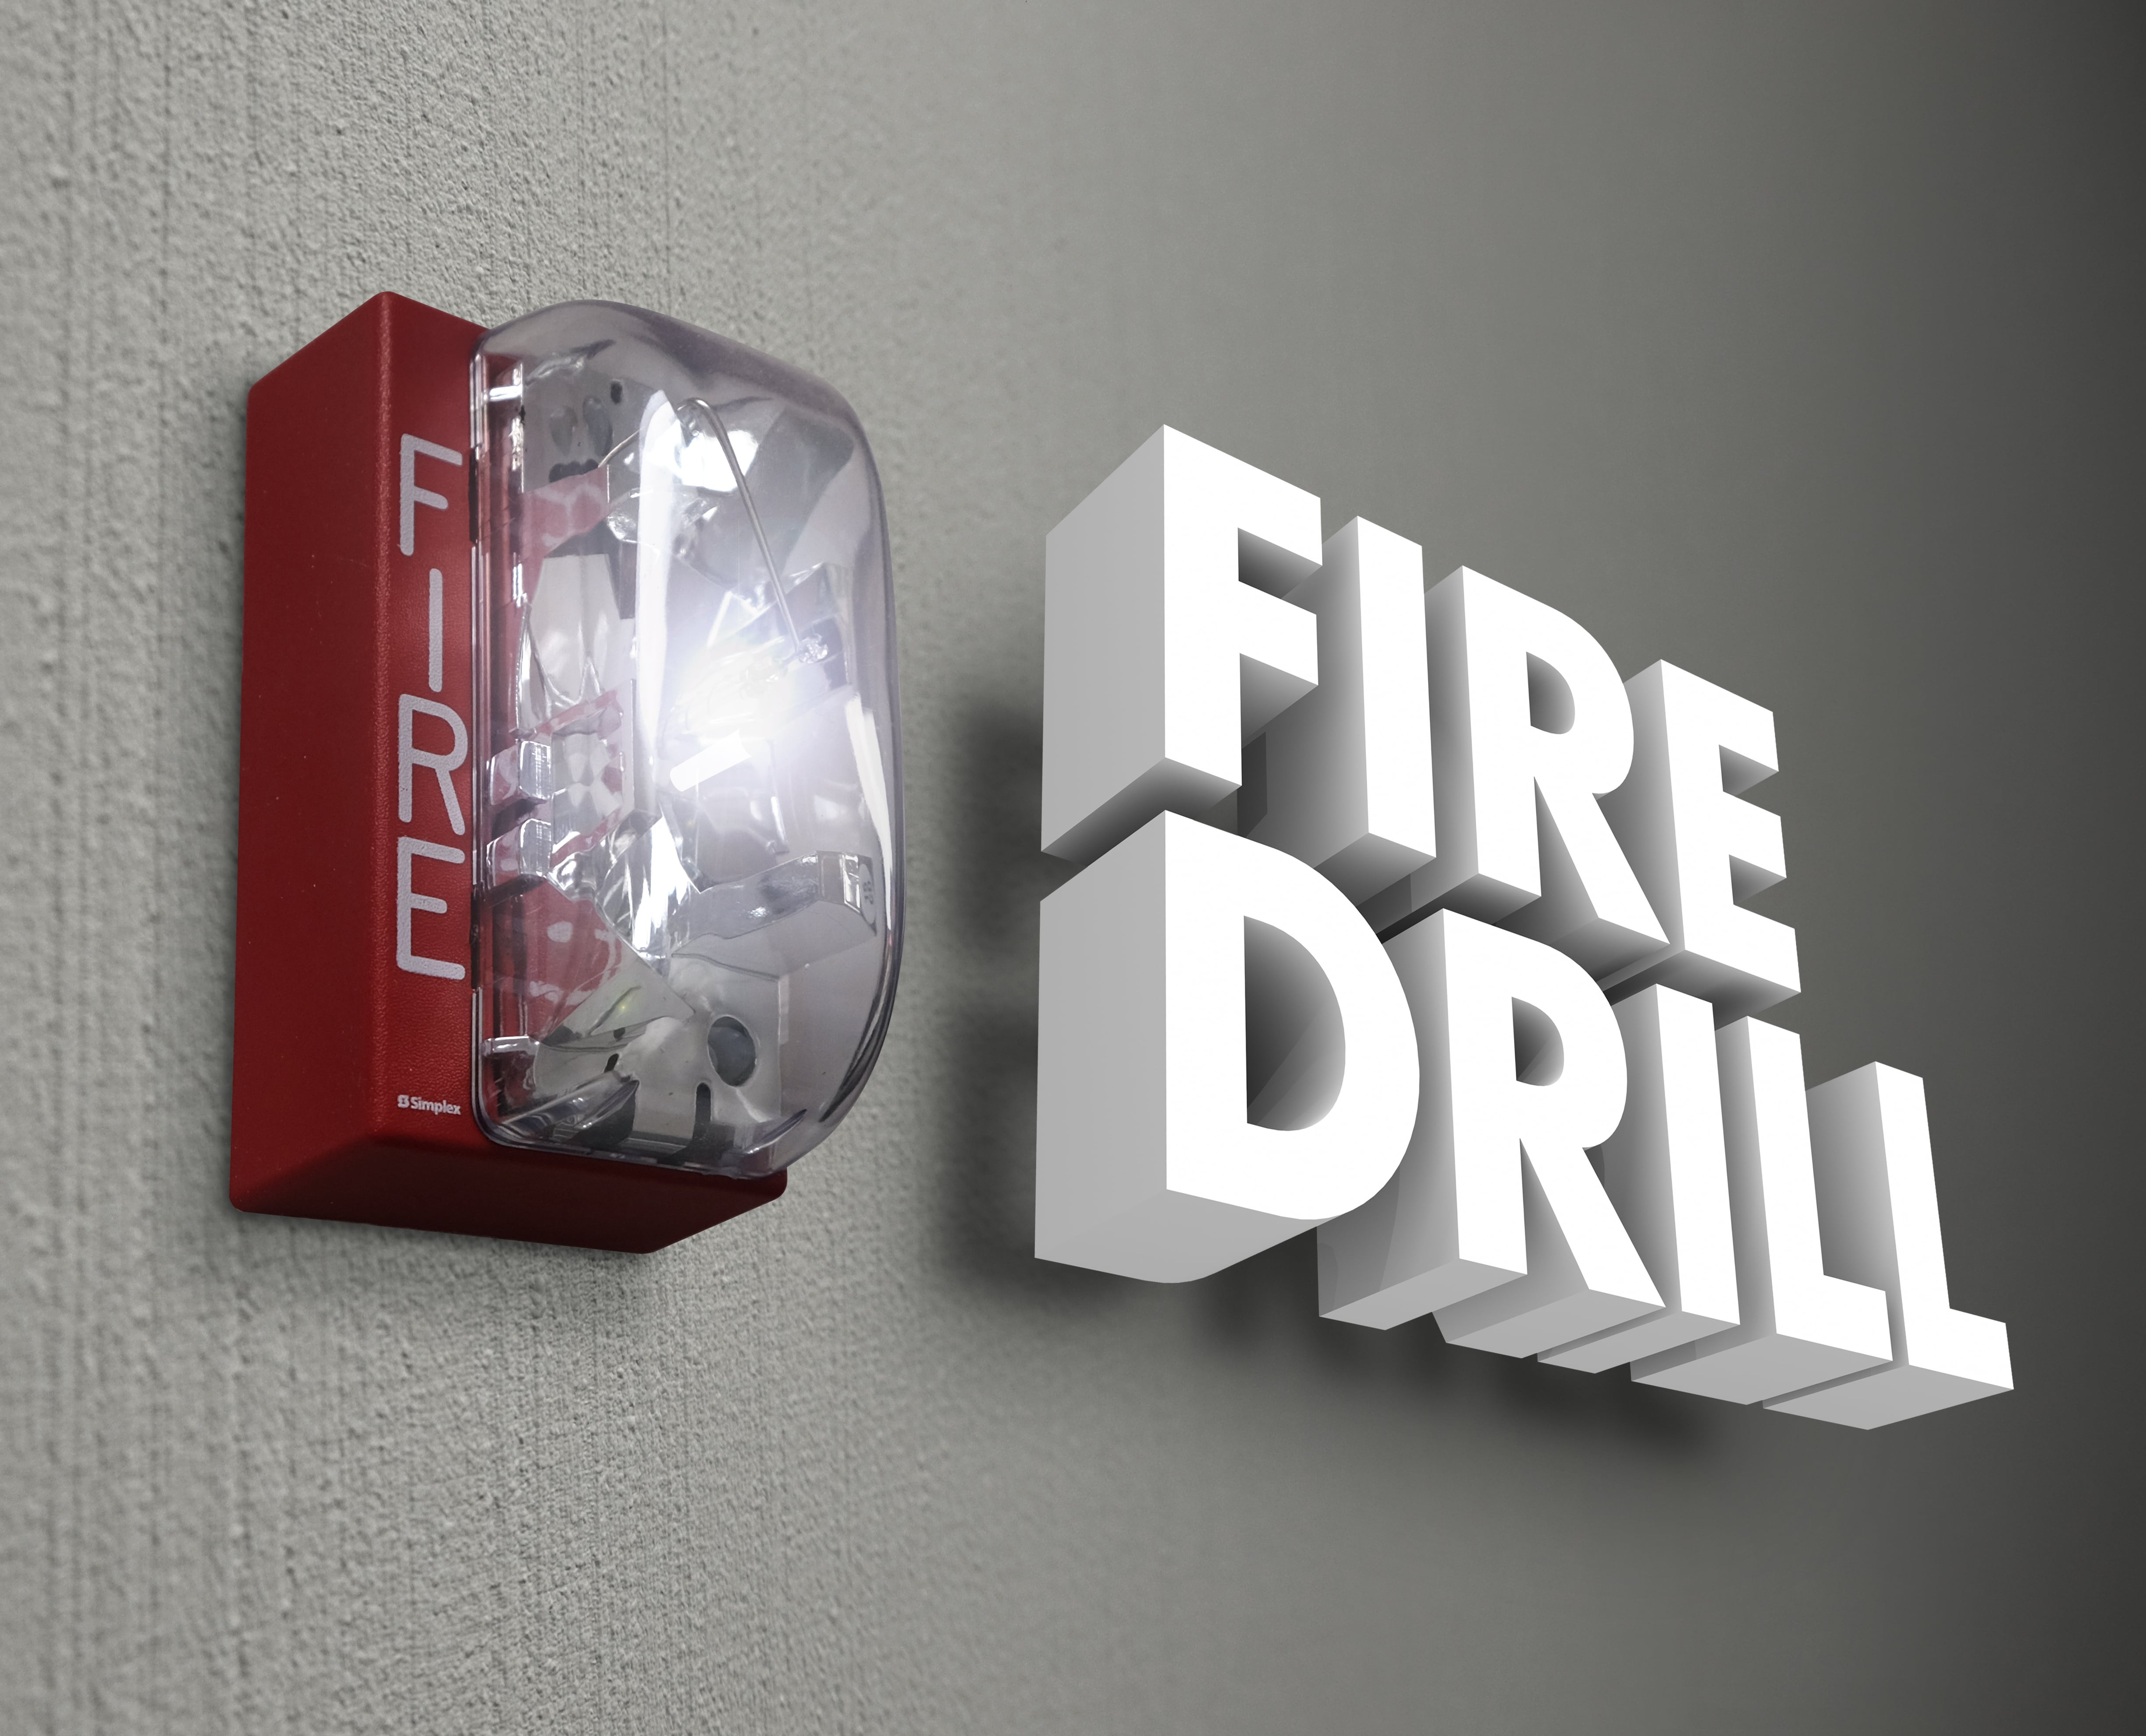 Fire drill systems